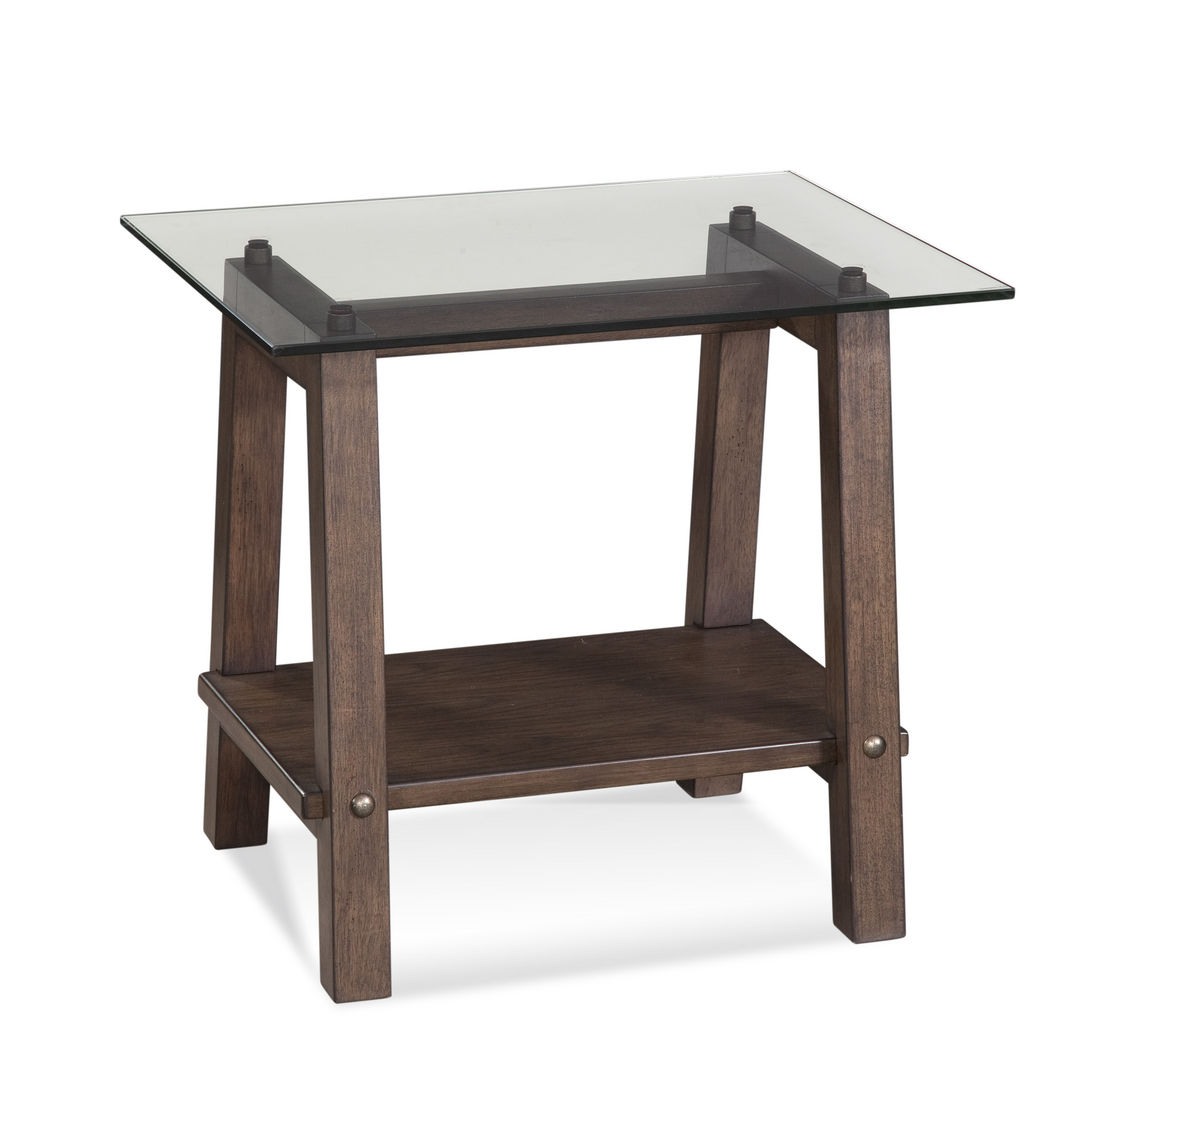 Ellsworth Rectangular End Table (Espresso) - [2891-200B-TEC] : Decor ...: www.decorsouth.com/listing/ellsworth-rectangular-end-table-espresso